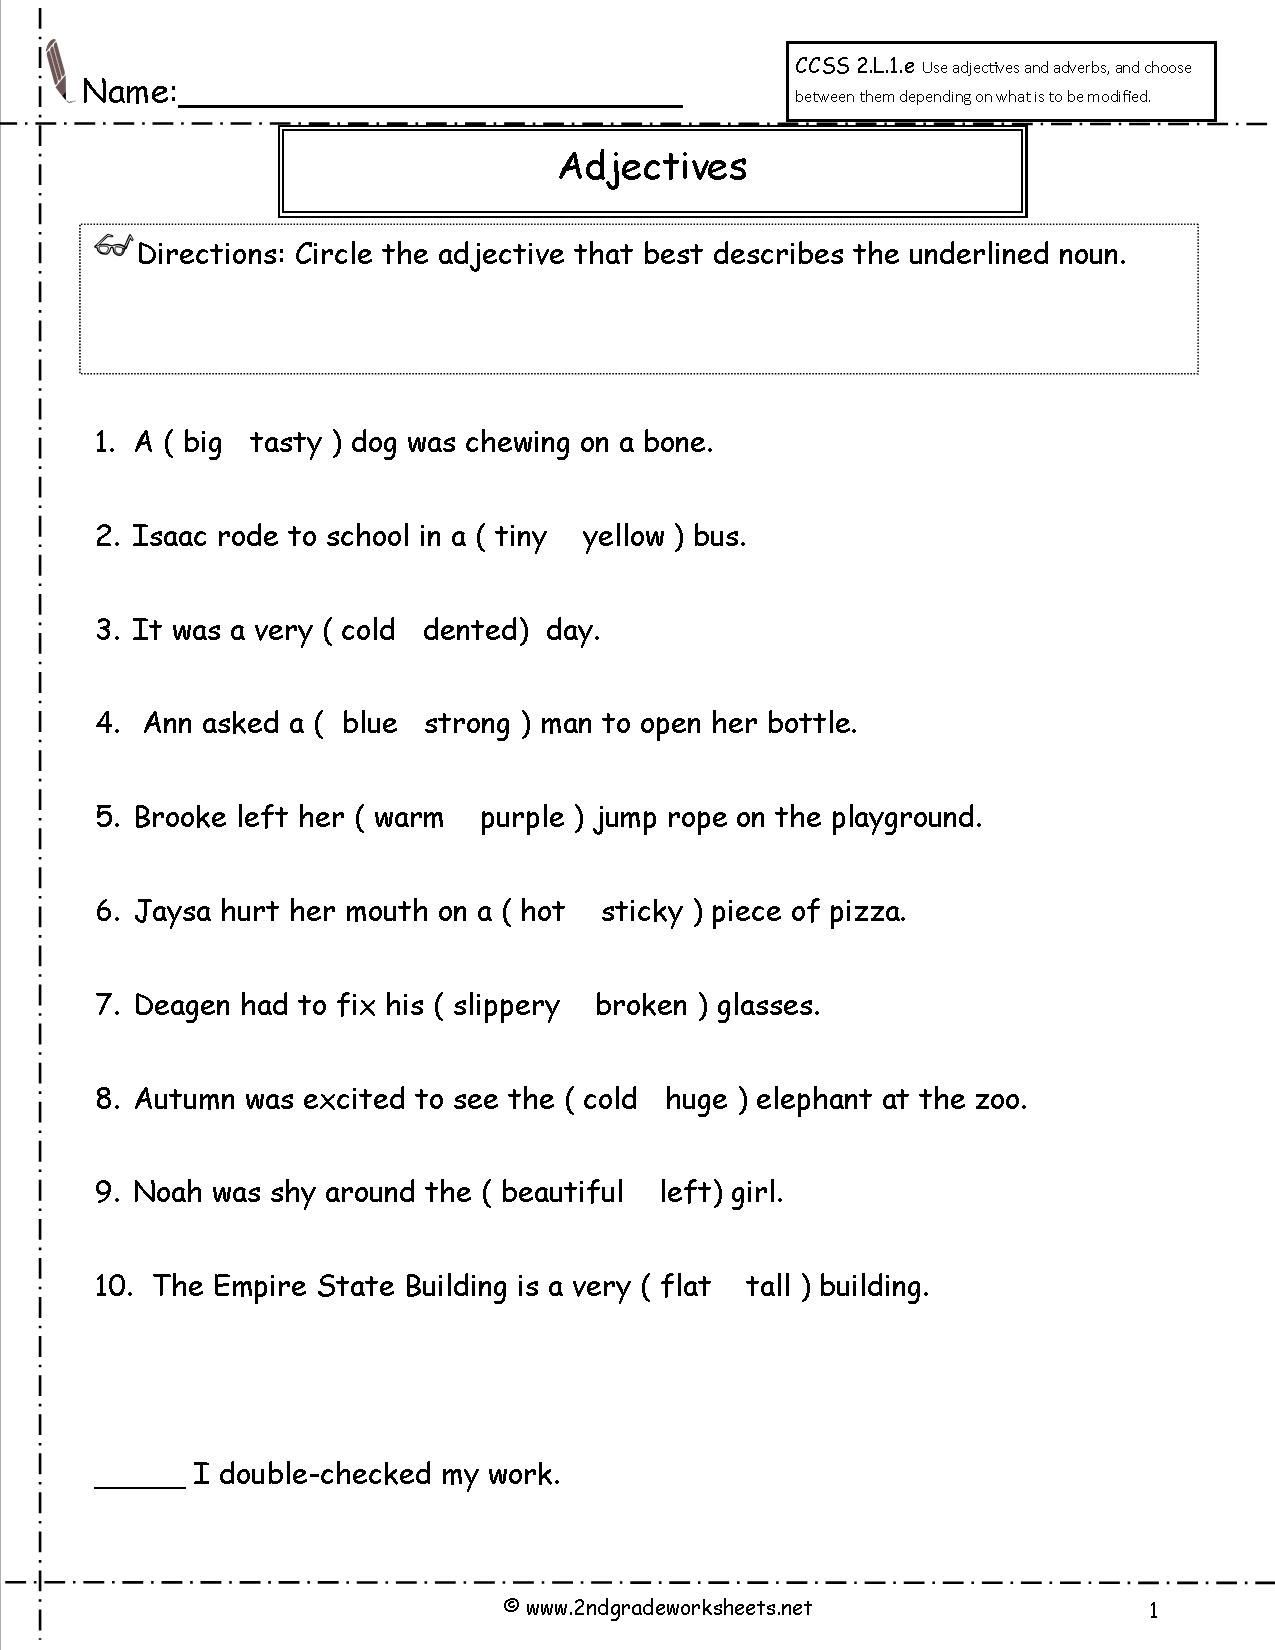 3 Hindi Grammar Worksheets For Class 7 Adjectives